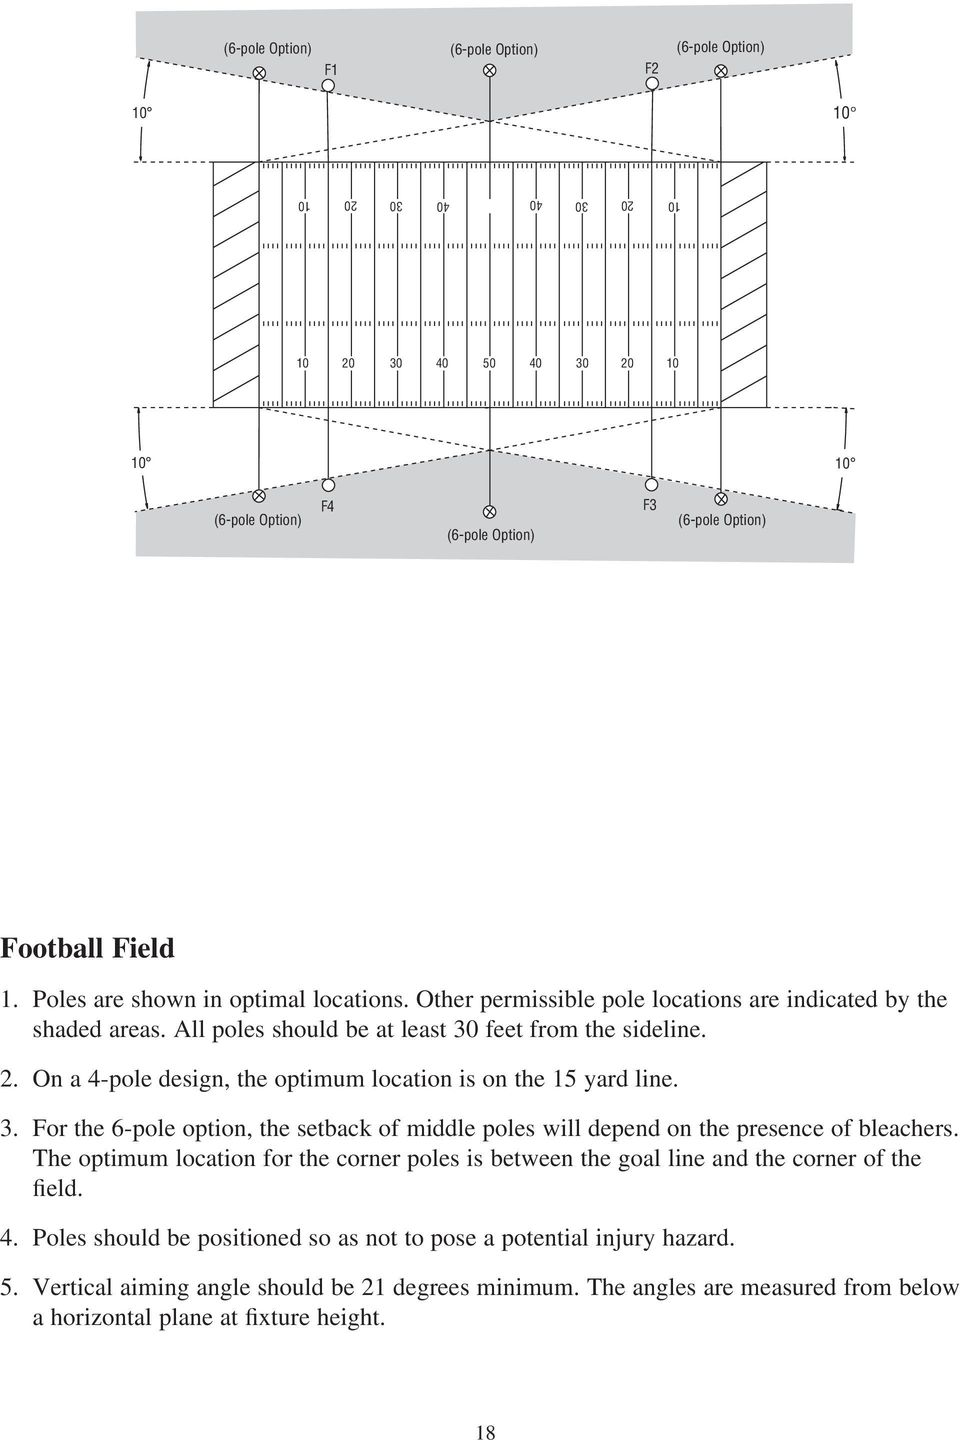 On a 4-pole design, the optimum location is on the 15 yard line. 3. For the 6-pole option, the setback of middle poles will depend on the presence of bleachers.